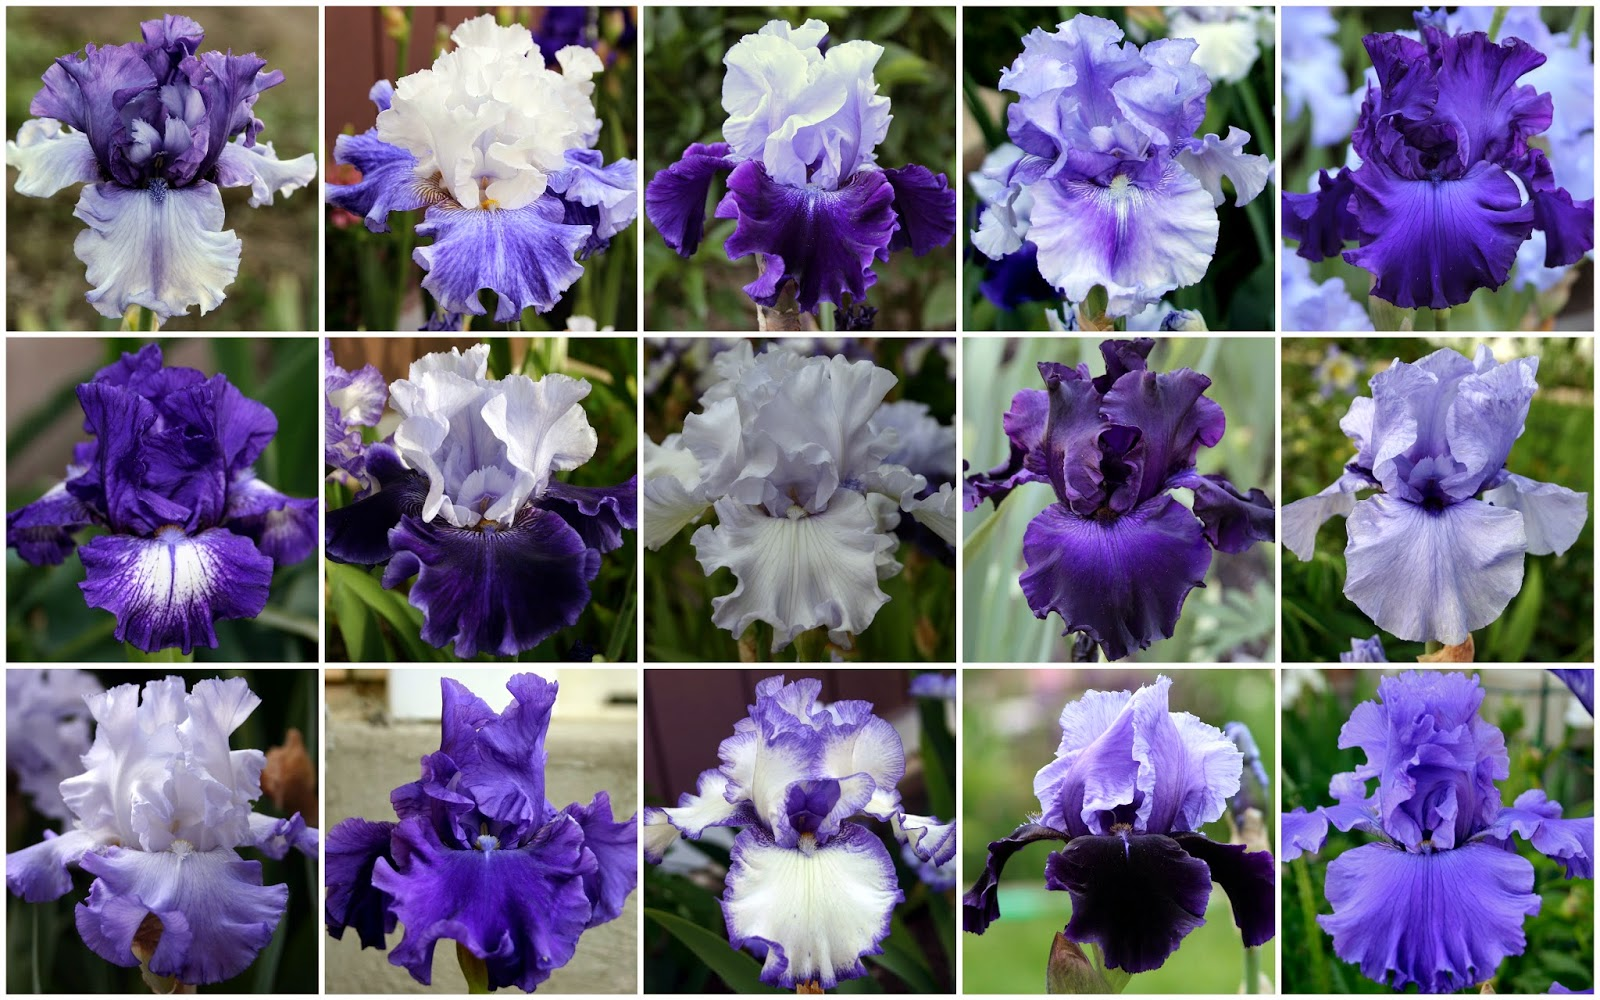 World of irises talking irises the blue iris garden planting a to achieve a maximum focal impact ive used a wide variety of selfs plicatas and neglectas although many cultivars in the bed are older varieties izmirmasajfo Gallery